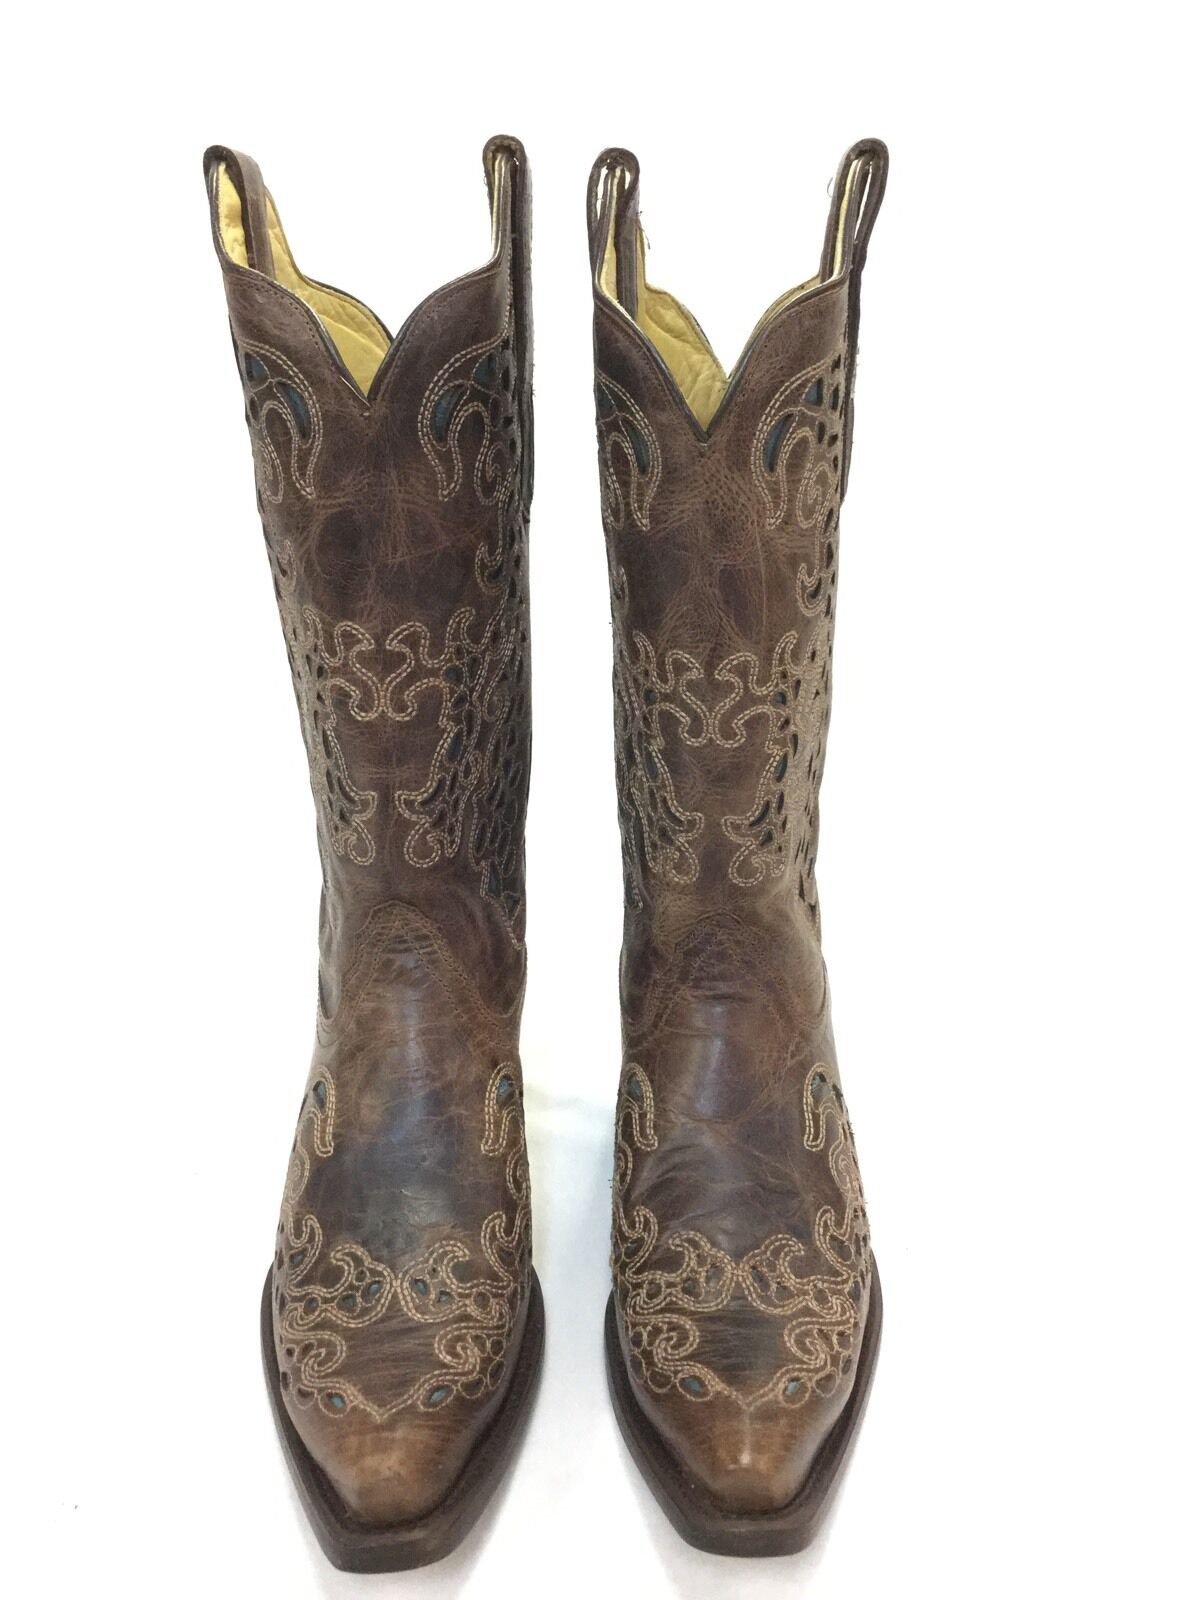 e8961670b90 Women's Corral Boots, Brown w Turquoise Inlay & Snip Toe nszxnu2639 ...